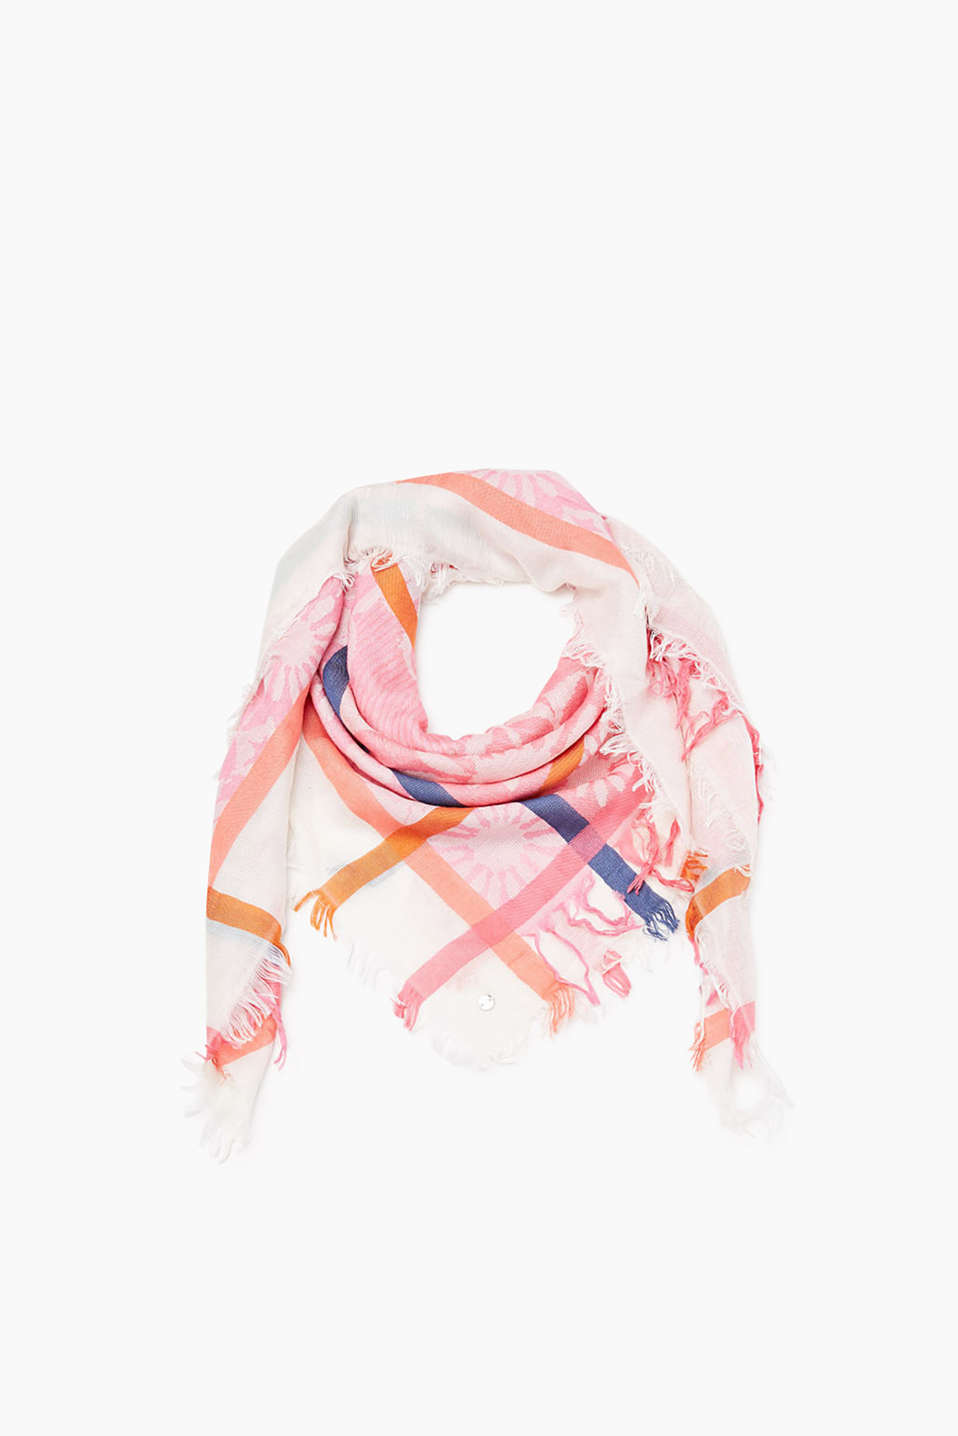 Flowing woven scarf with a floral jacquard pattern and fringing on the ends